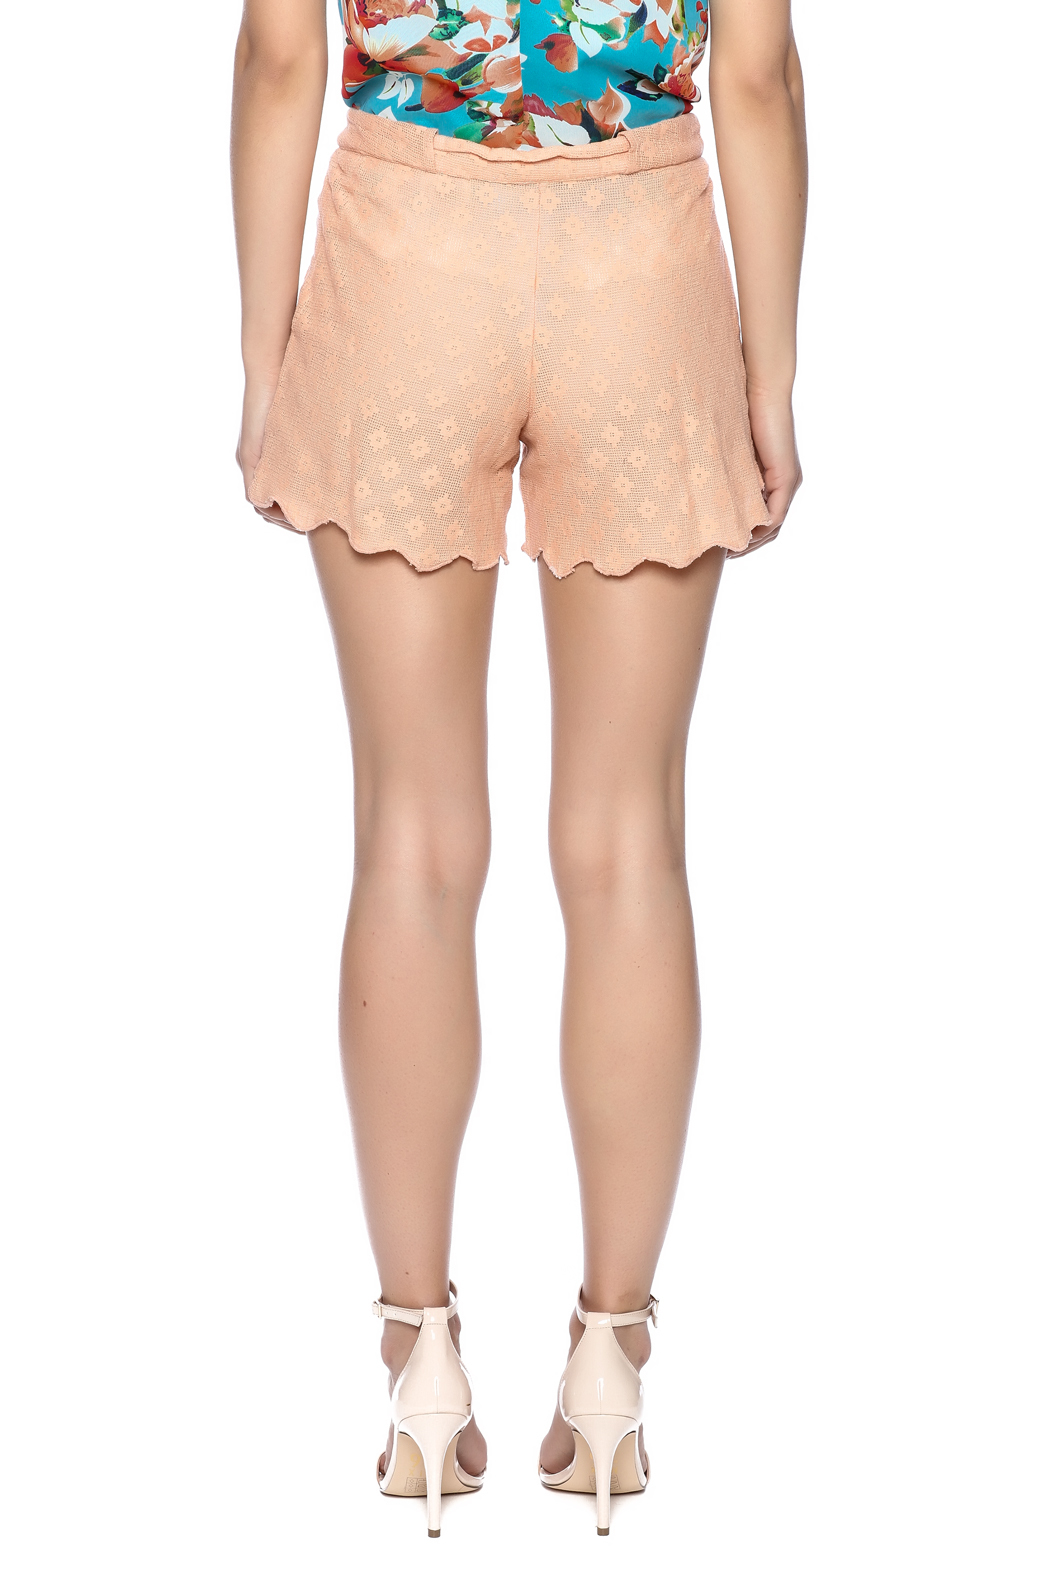 Z&L Europe Peach Lace Shorts - Back Cropped Image